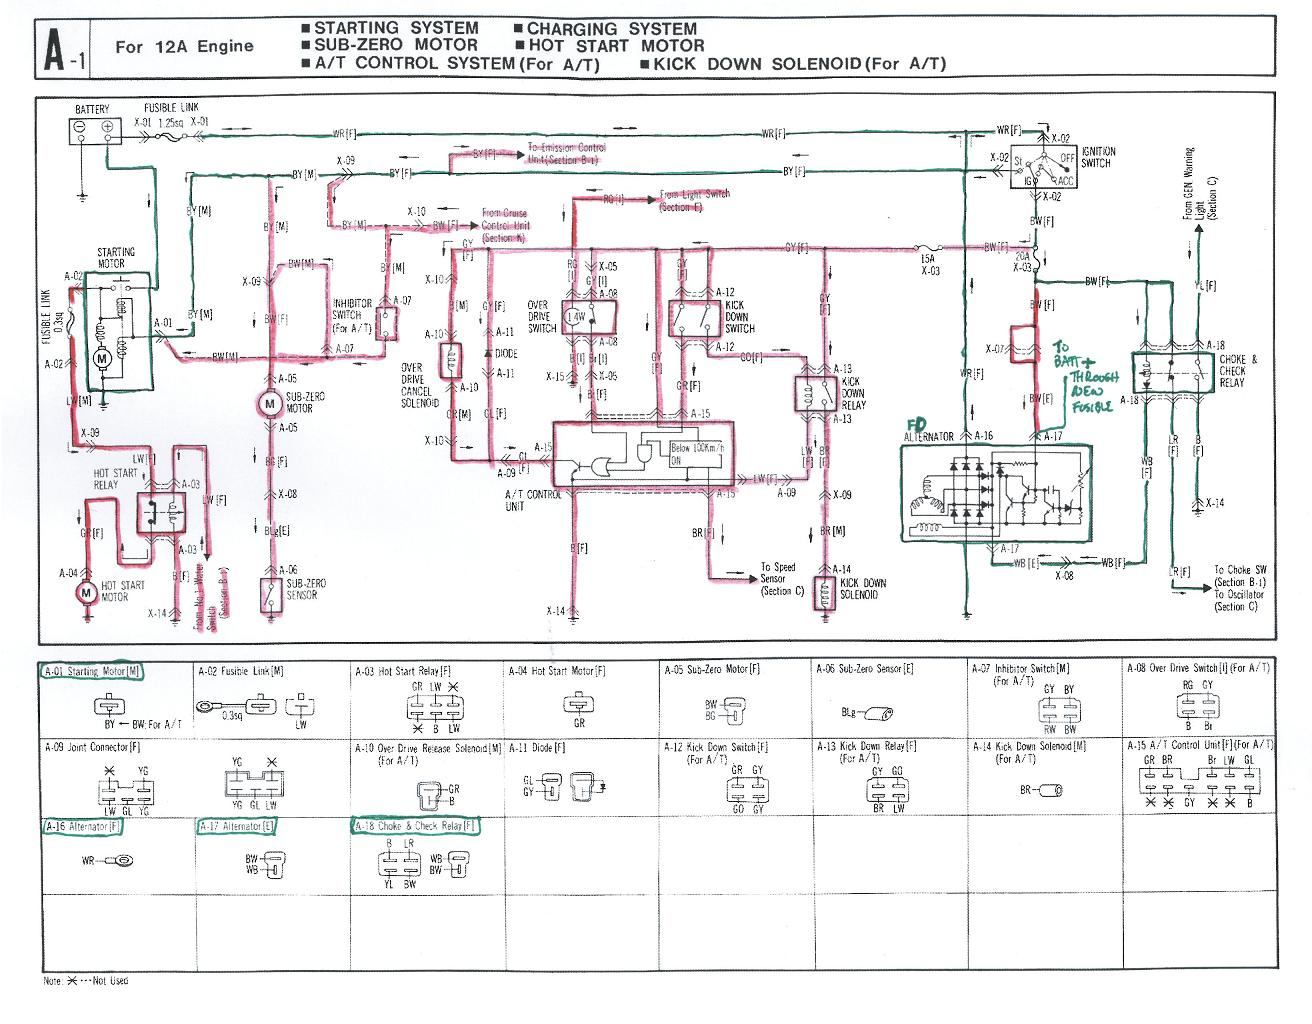 Kenworth Fuse Panel Wiring Diagram Detailed Schematic Diagrams Fl70 Wiring  Diagram Kenworth Fuse Panel Wiring Diagram